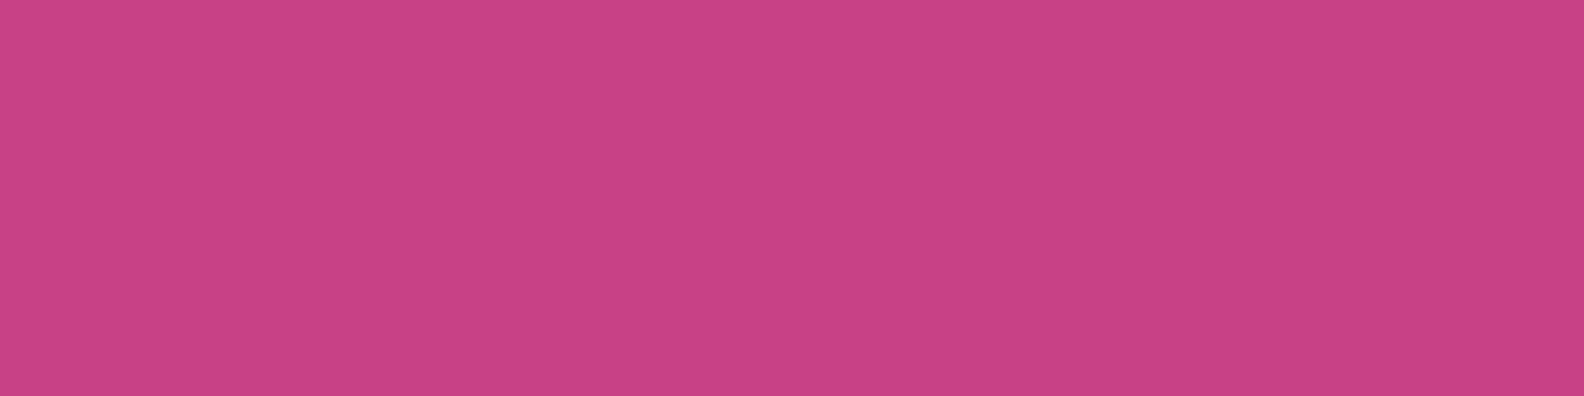 1584x396 Smitten Solid Color Background